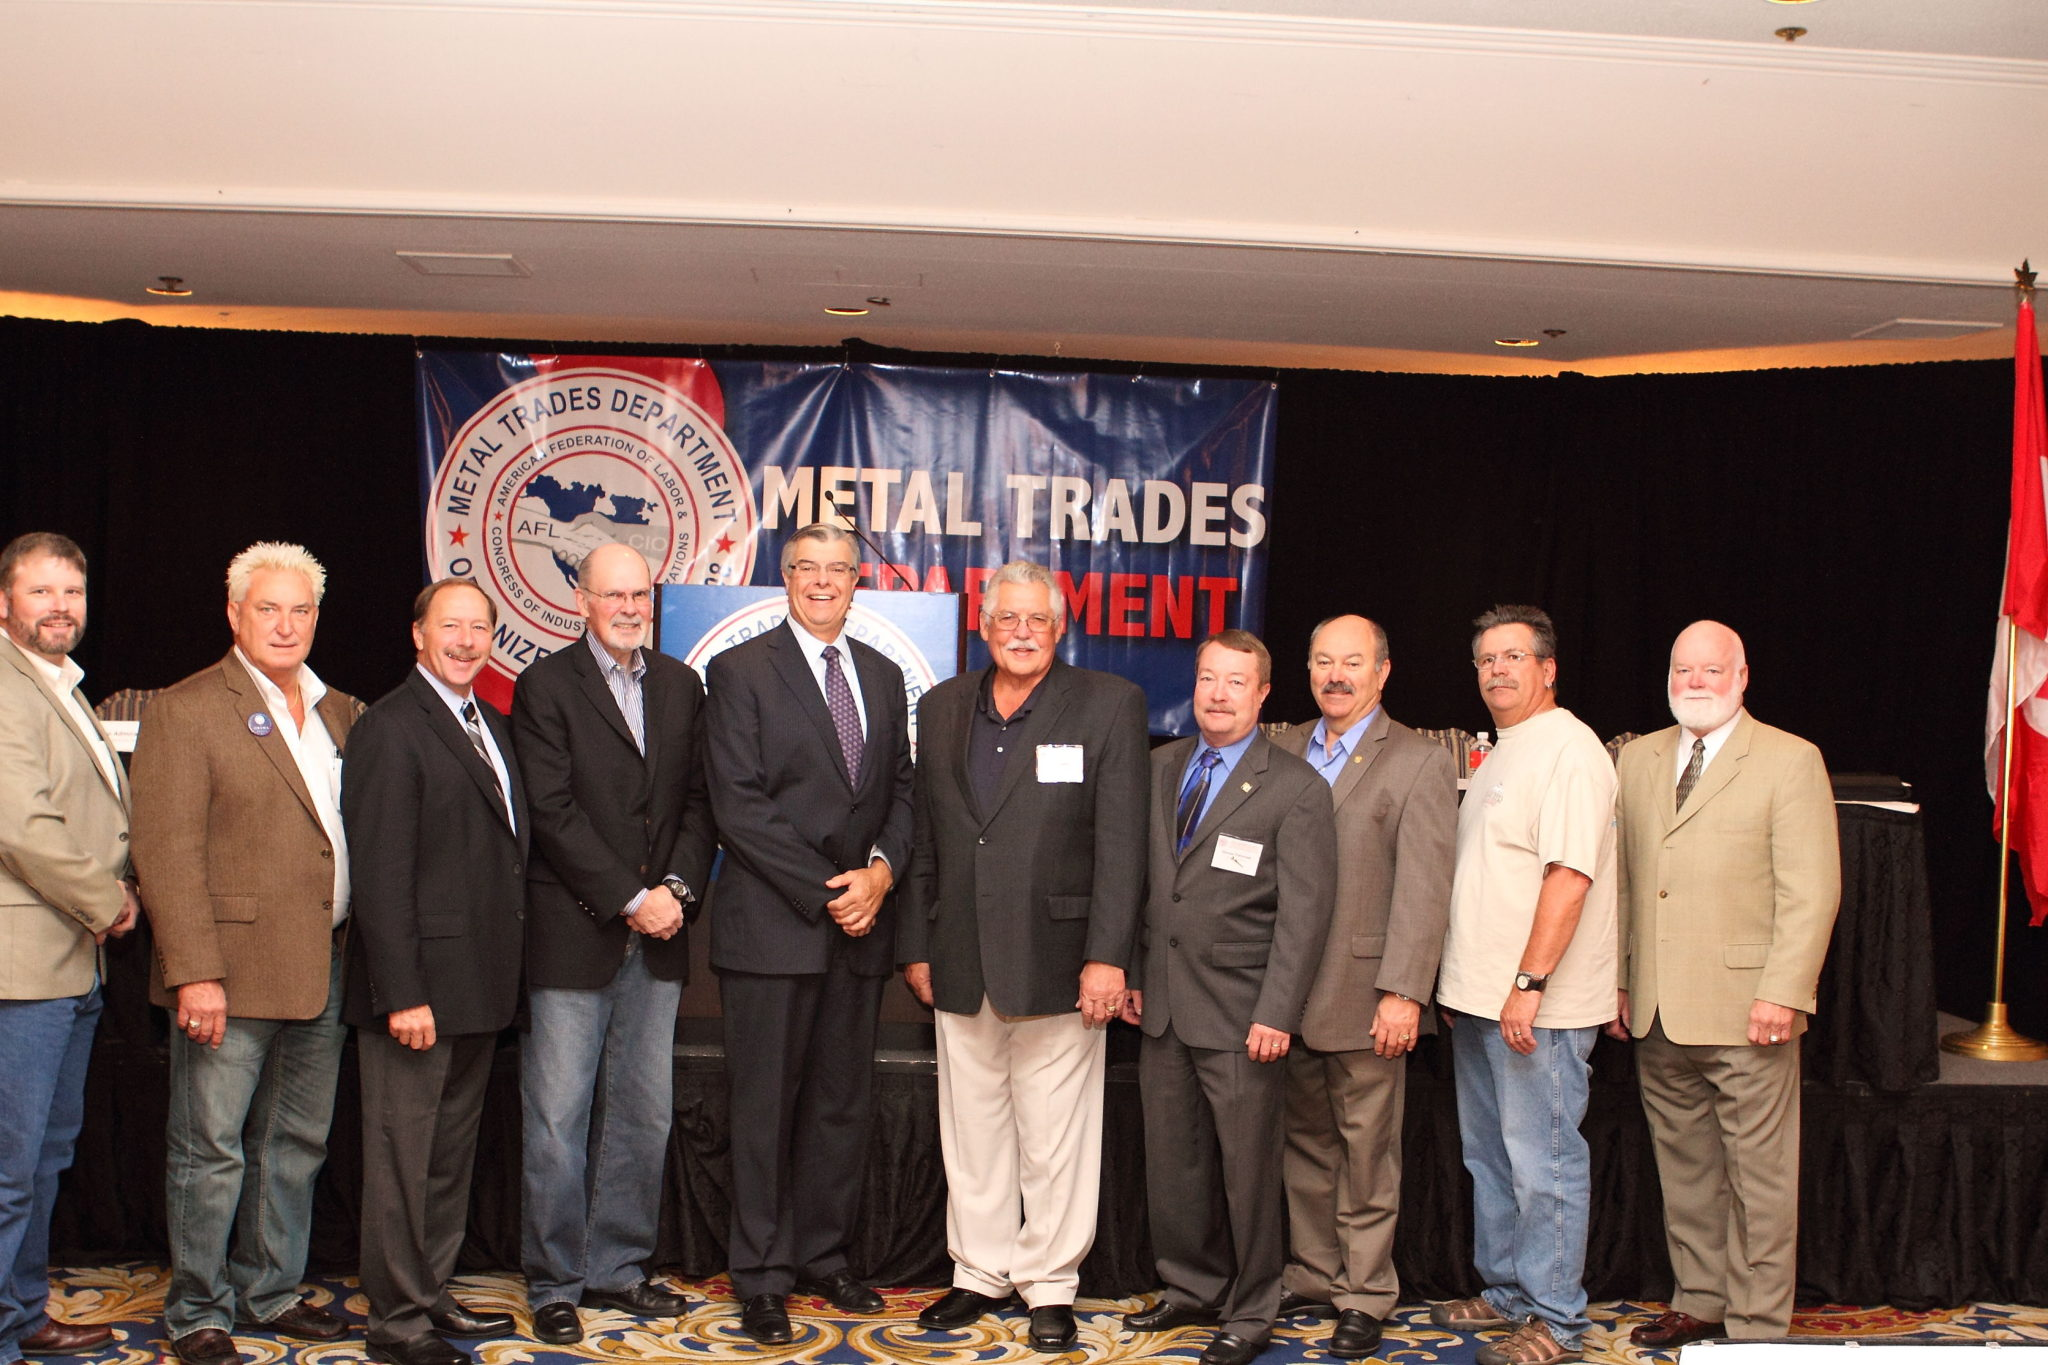 Ironworkers group